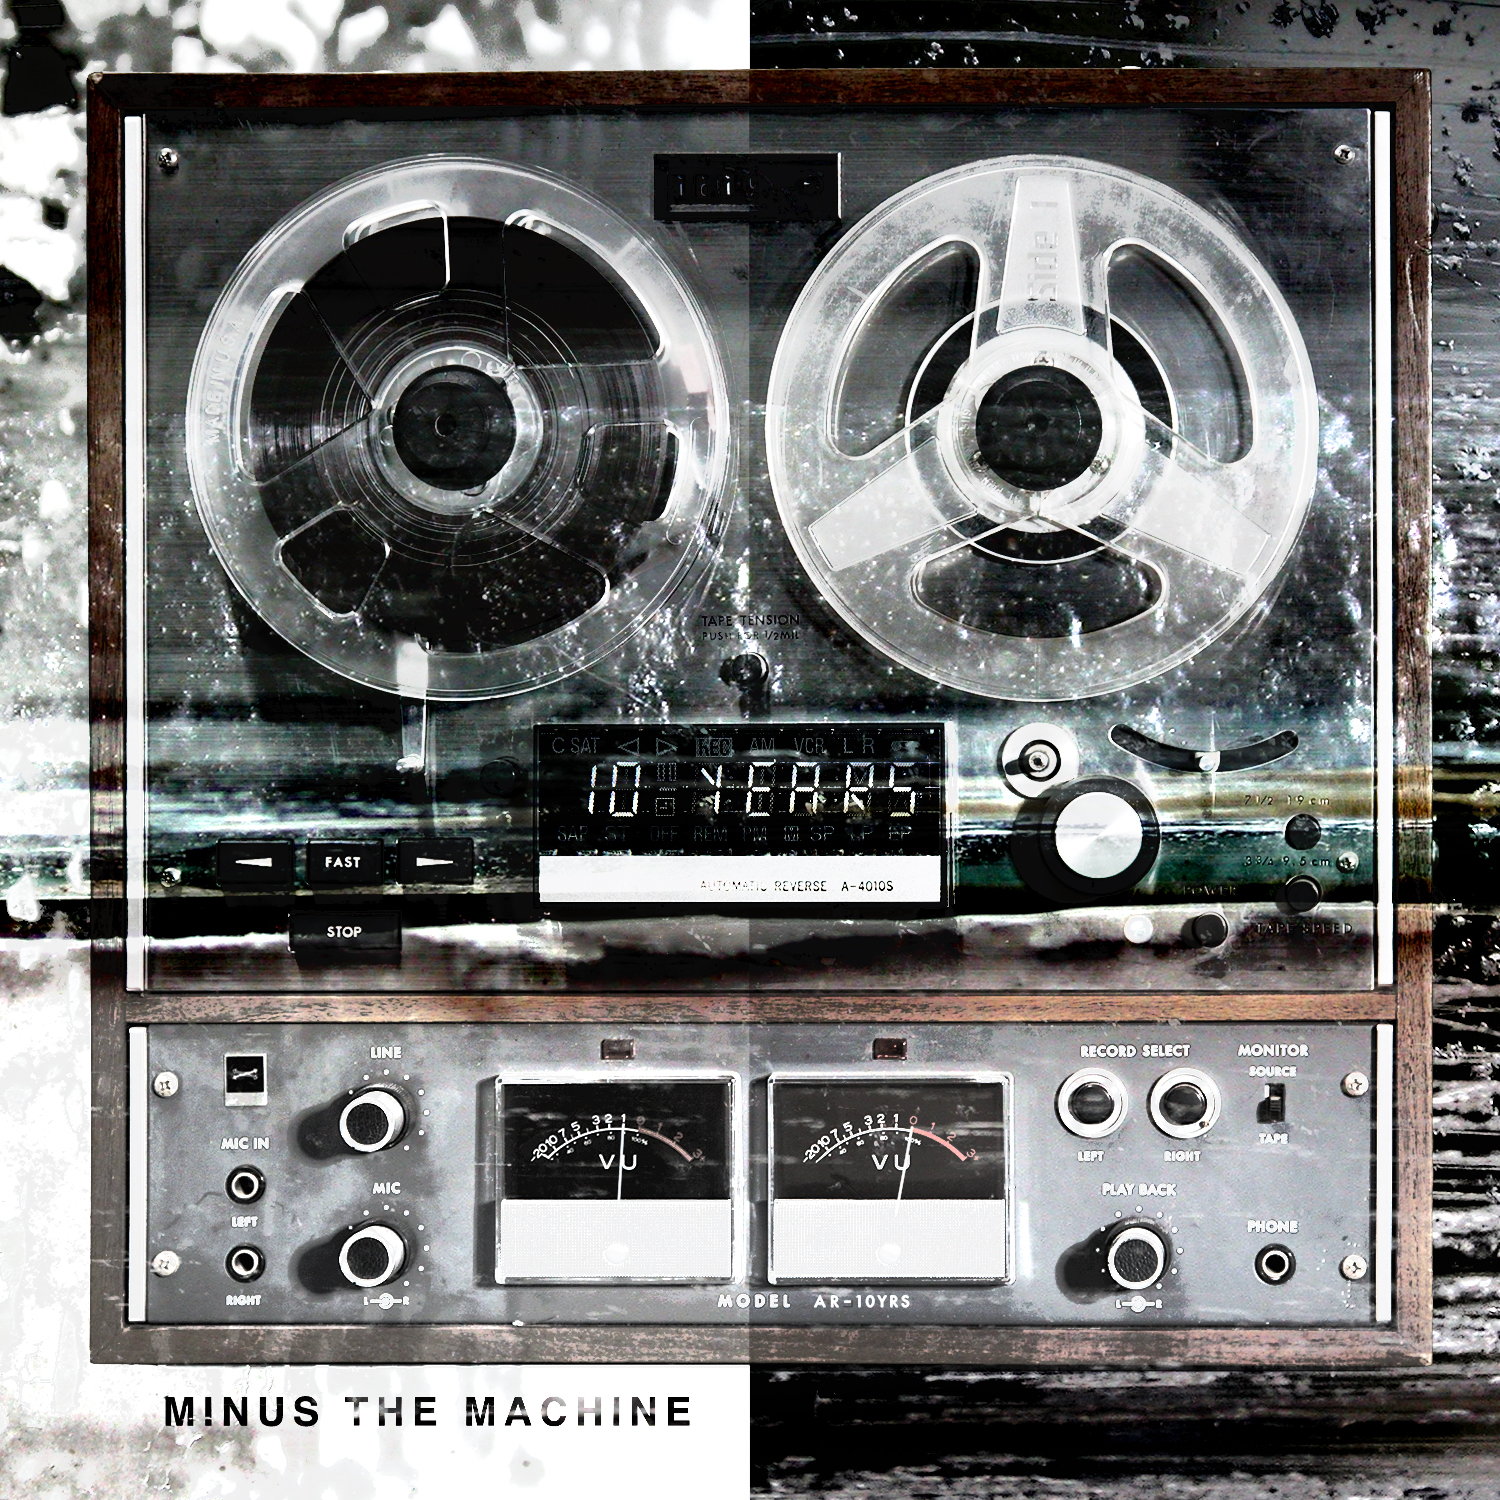 10 Years Minus The Machine artwork